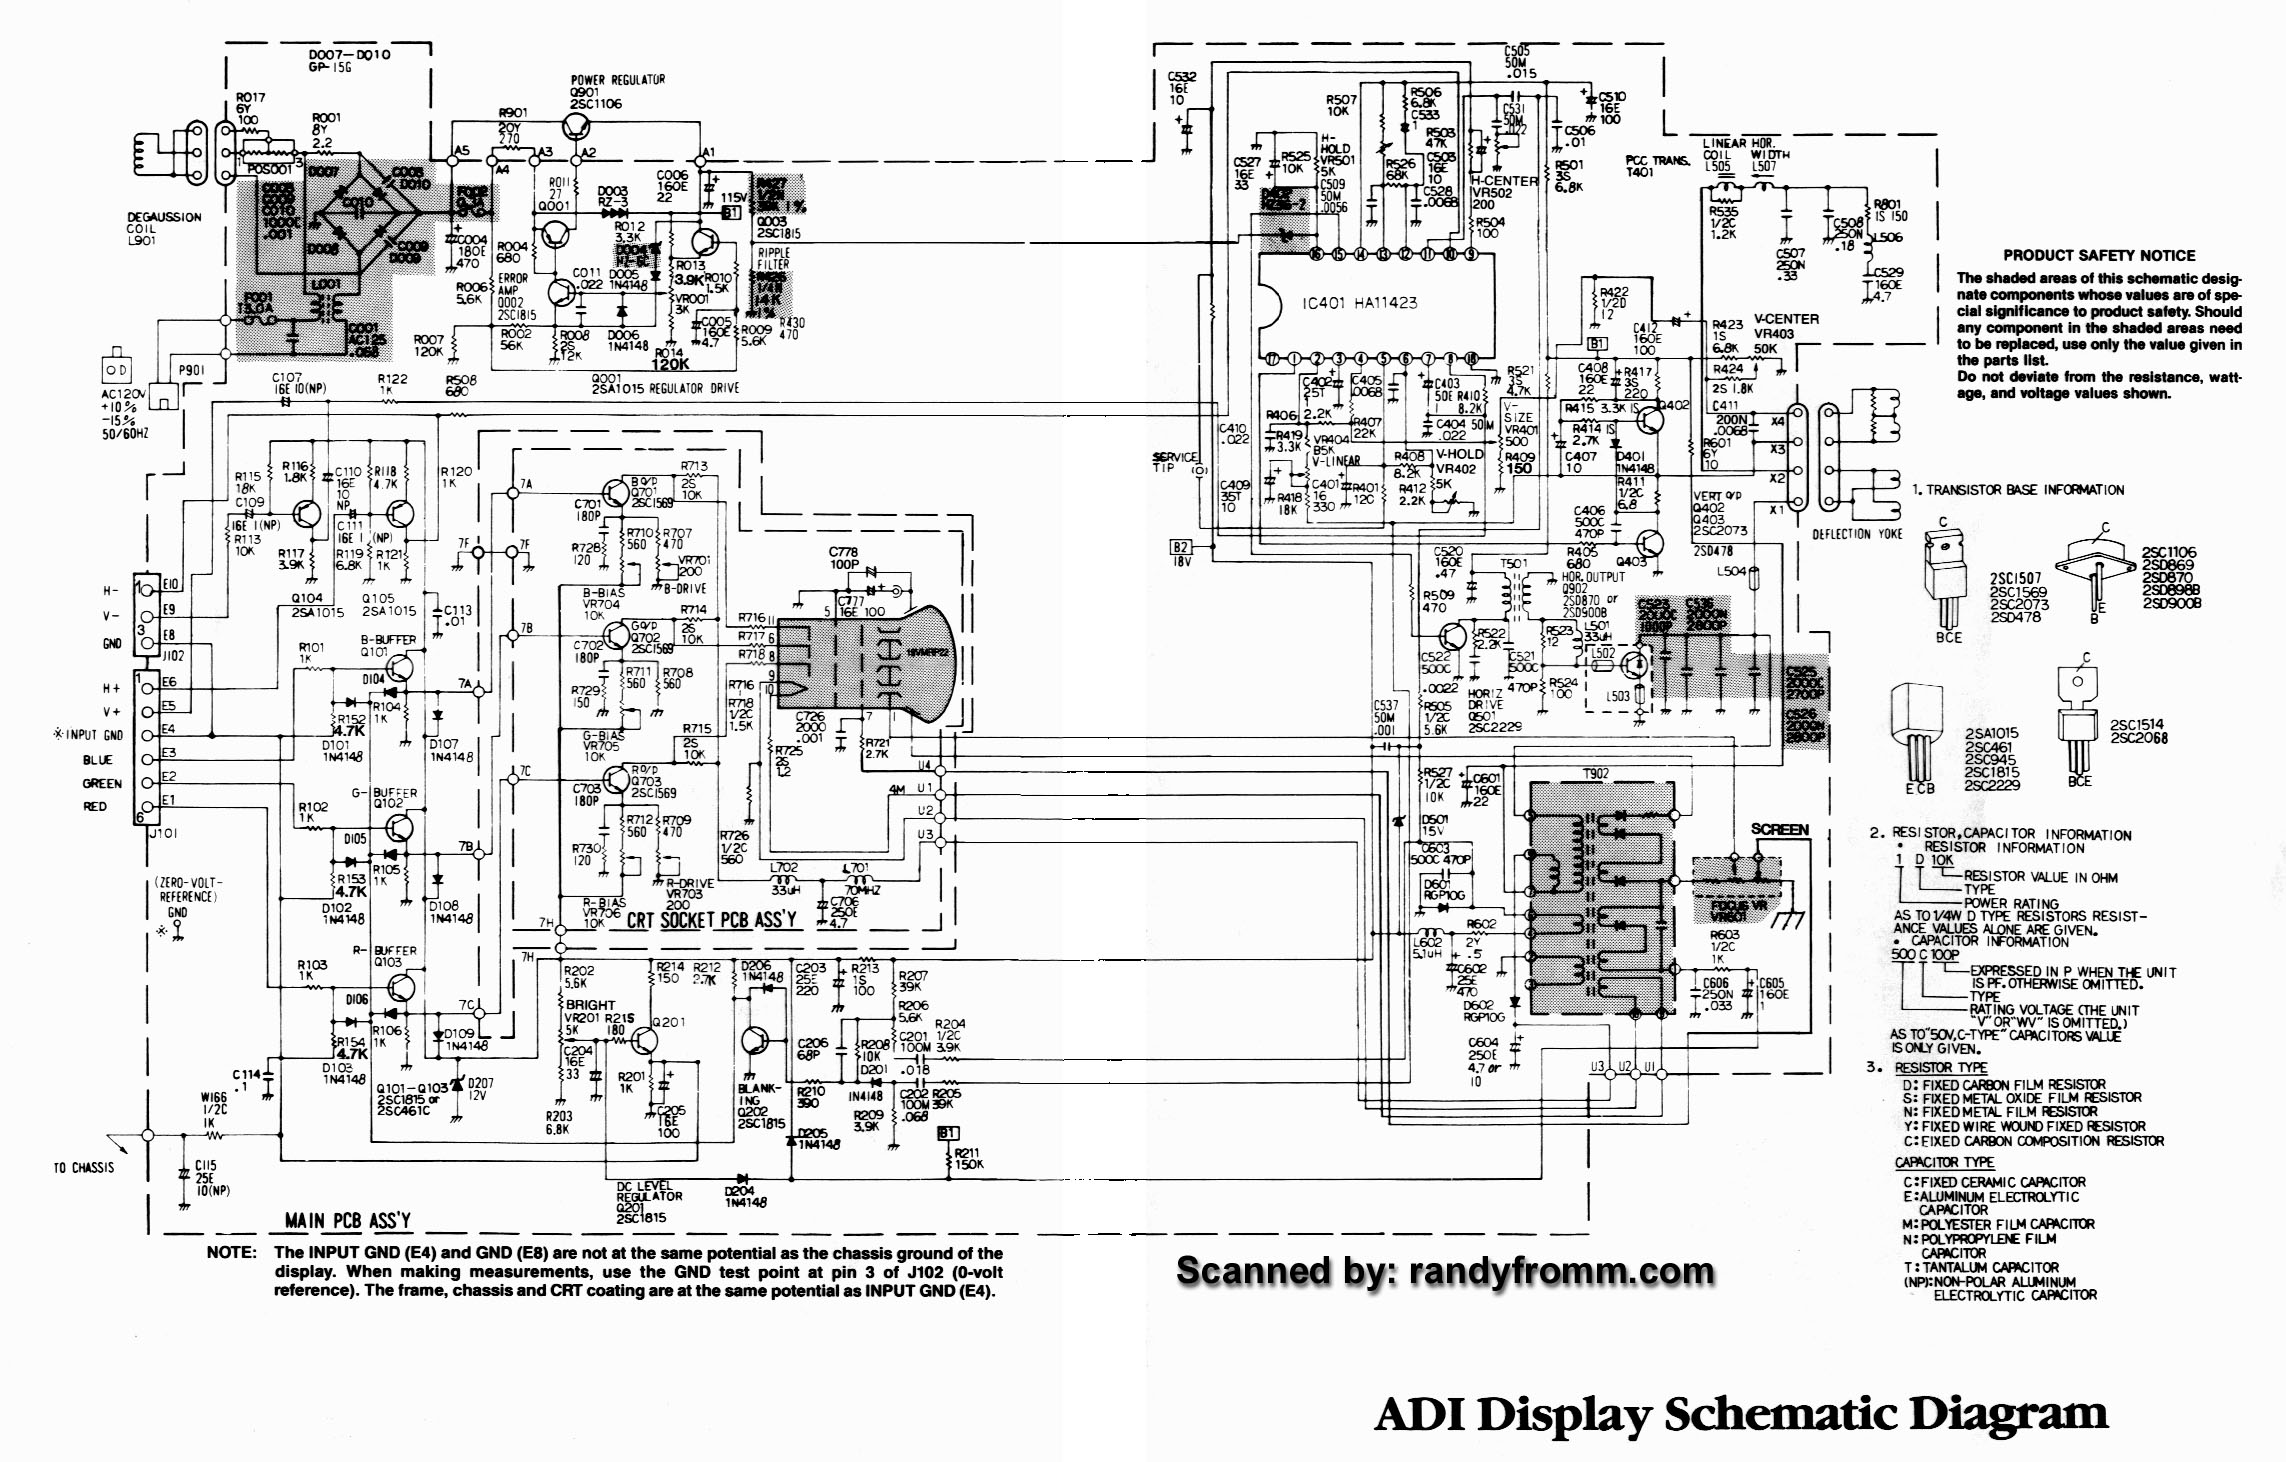 schematic diagram manual hantarex f1428se monitor